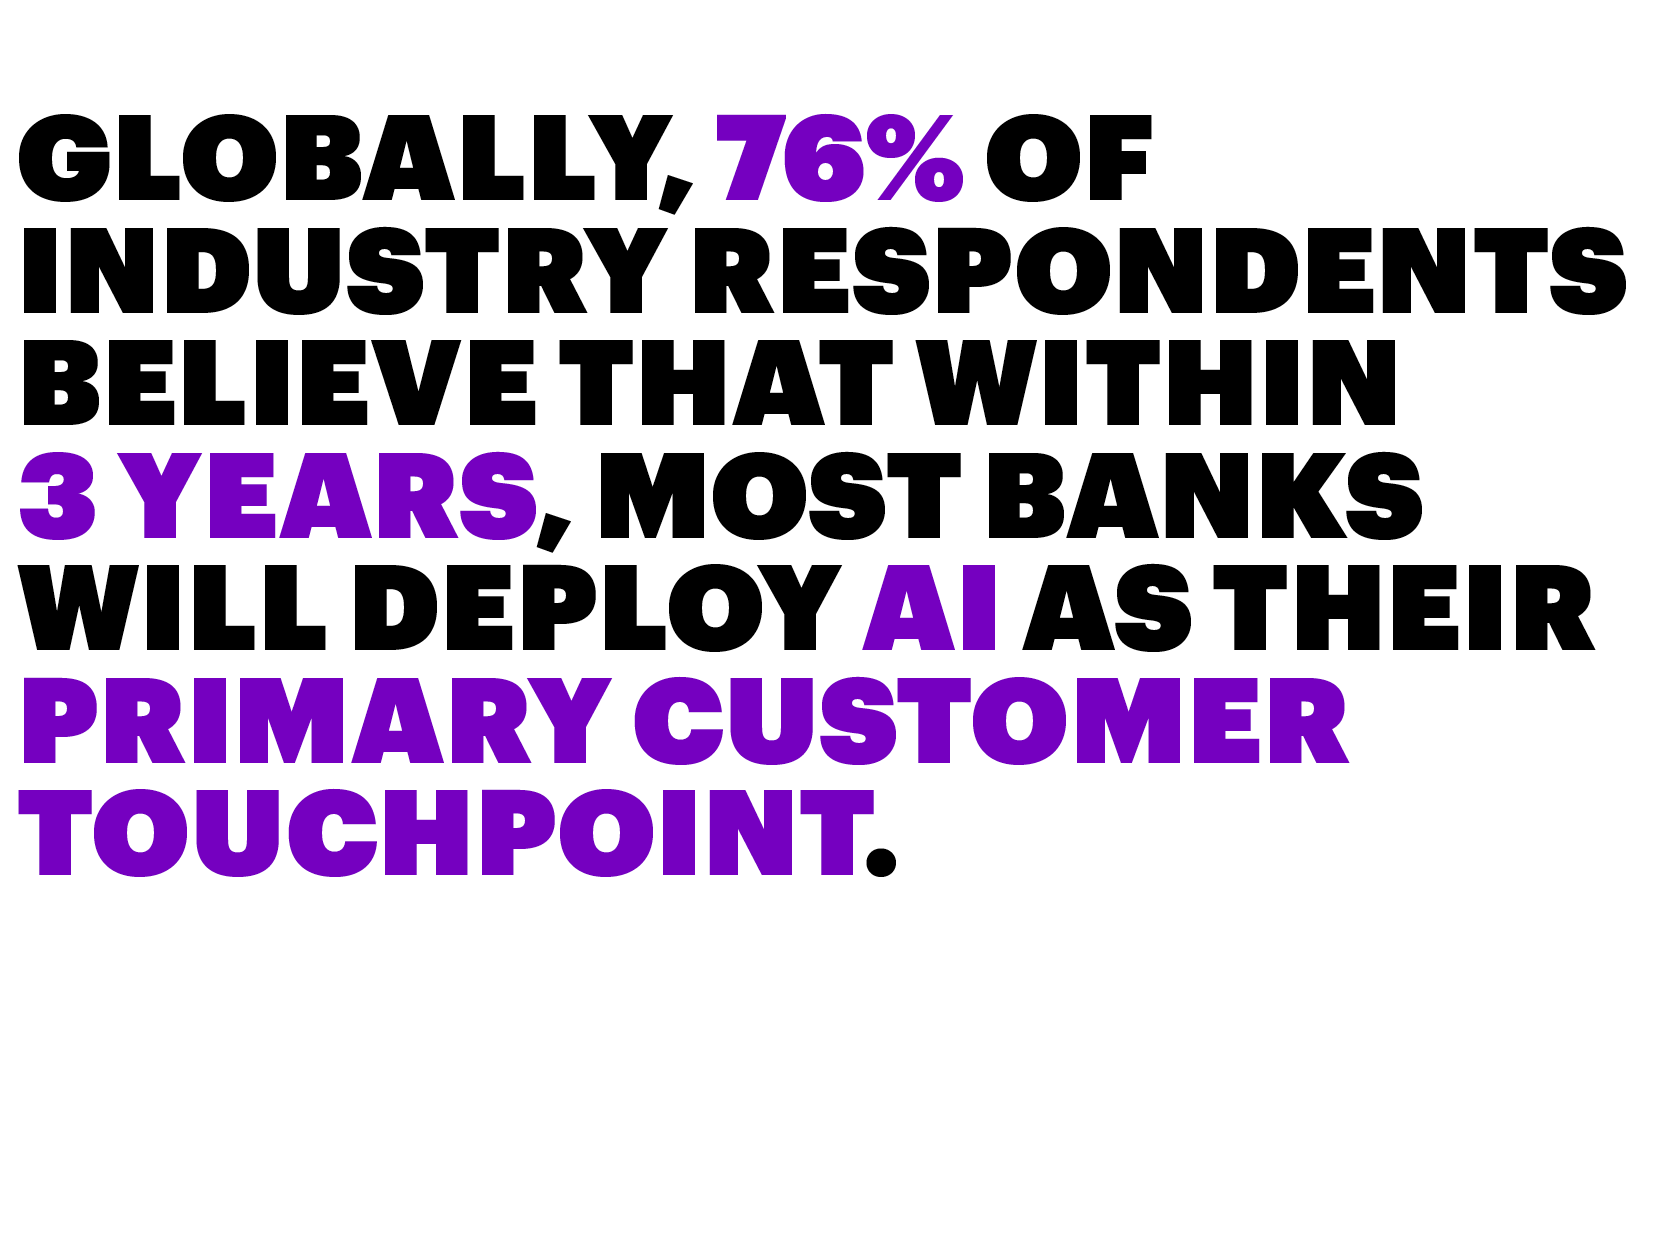 Globally, 76% of industry respondents believe that within 3 years, most banks will deploy AI as their primary customer touchpoint.